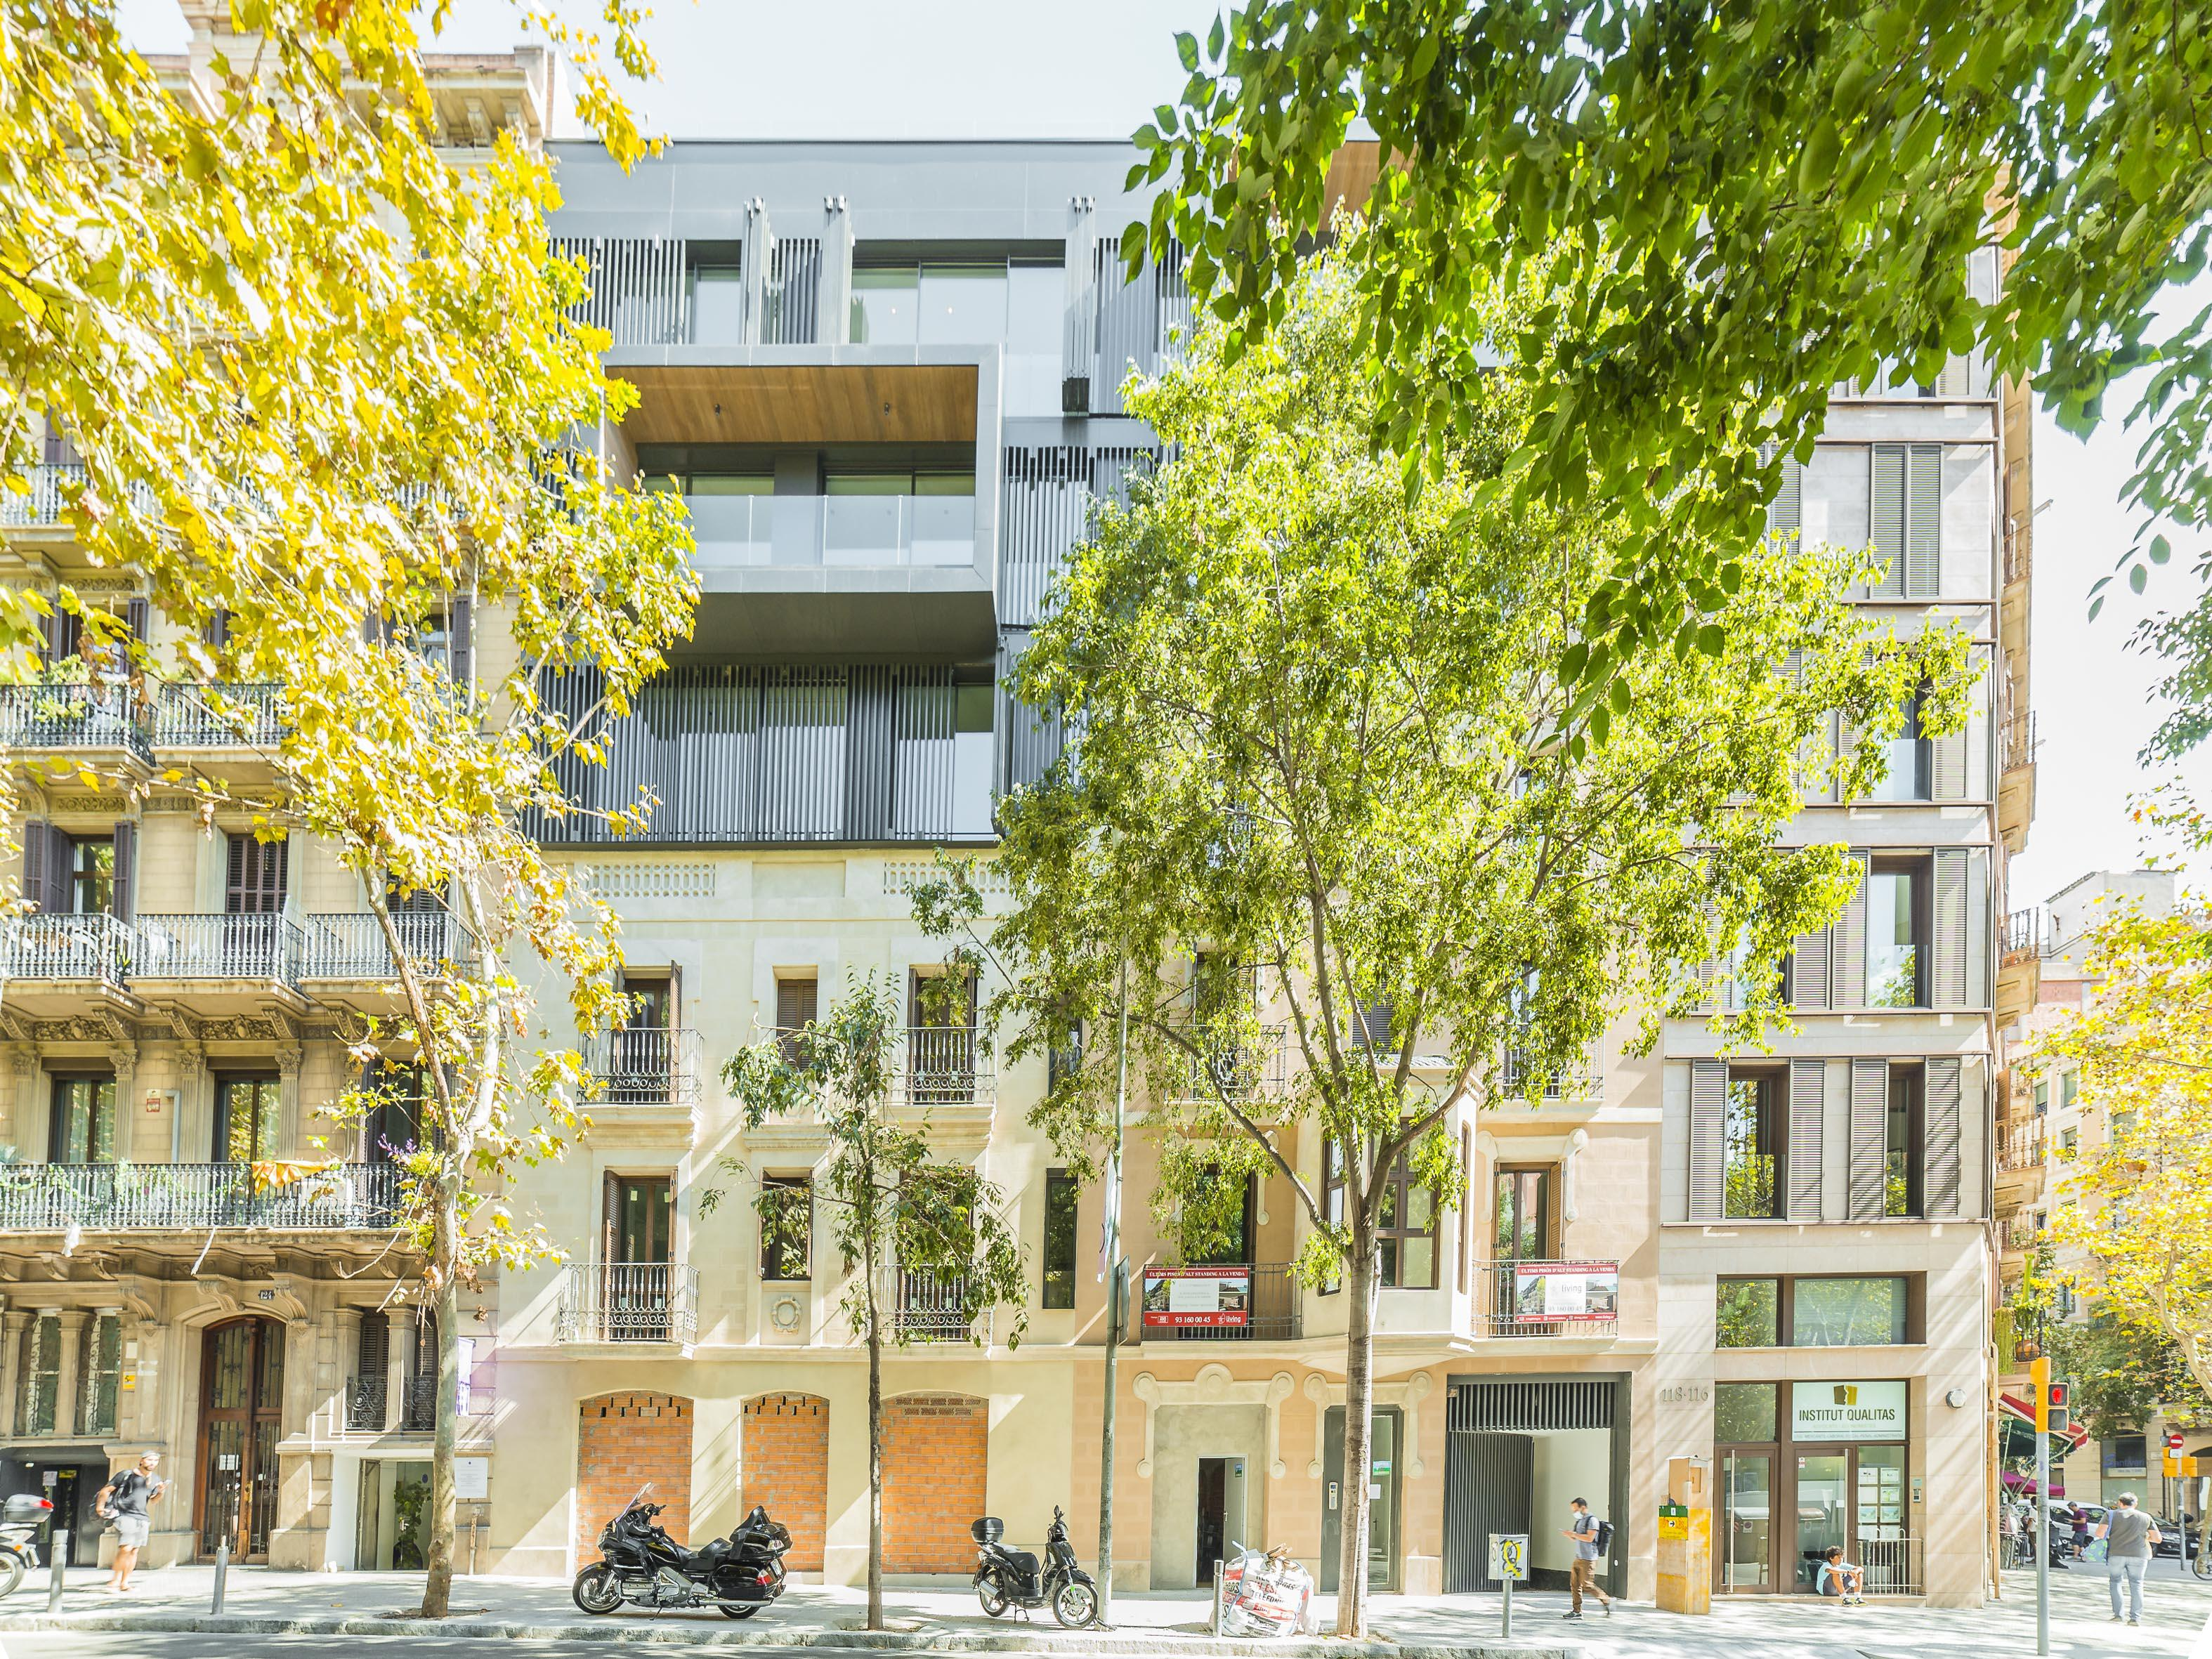 182176 Apartment for sale in Eixample, Old Left Eixample 3